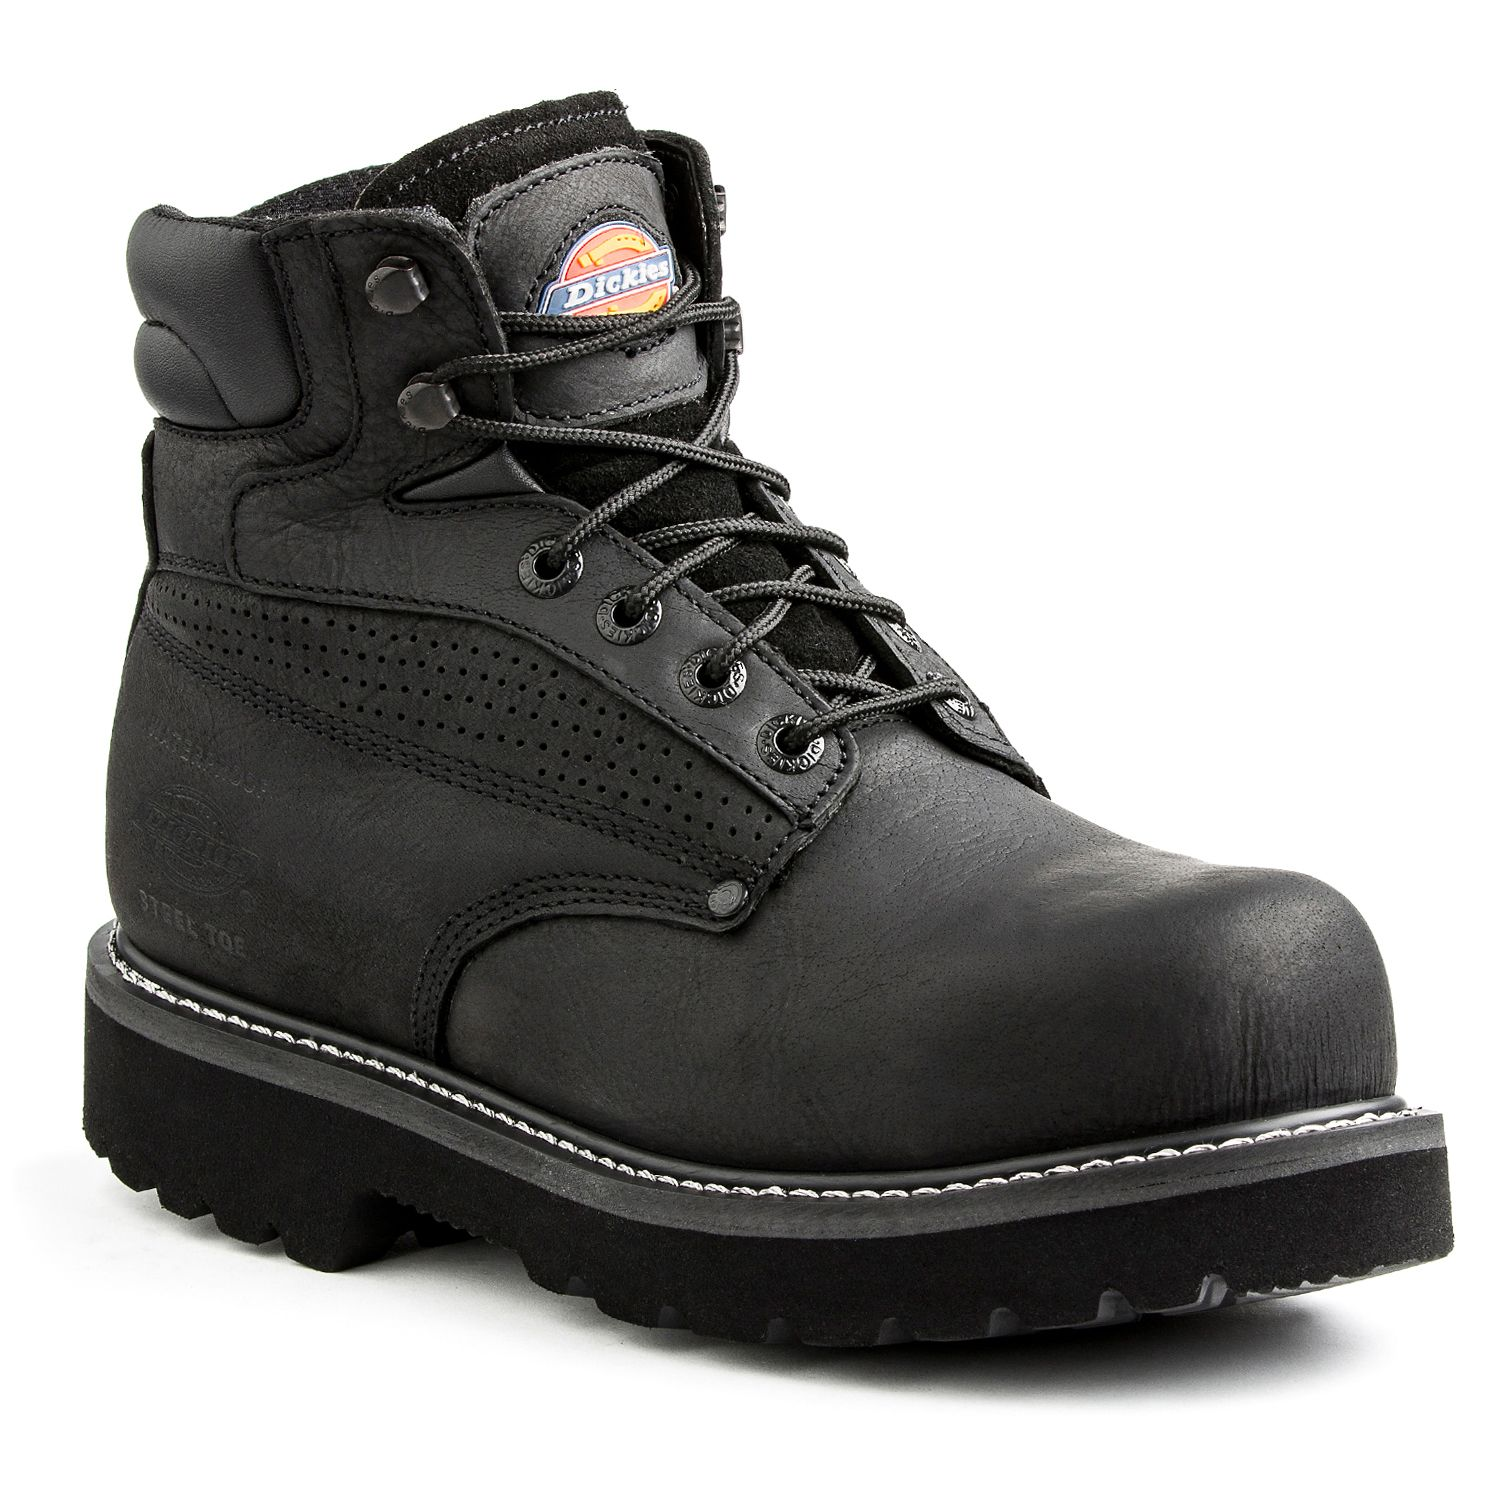 columbia safety shoes. columbia safety shoes columbia boots men snow columbia men's shoes ym columbia sportswear powderbug plus ii print winter boots waterproof for youth police academy training columbia sc.